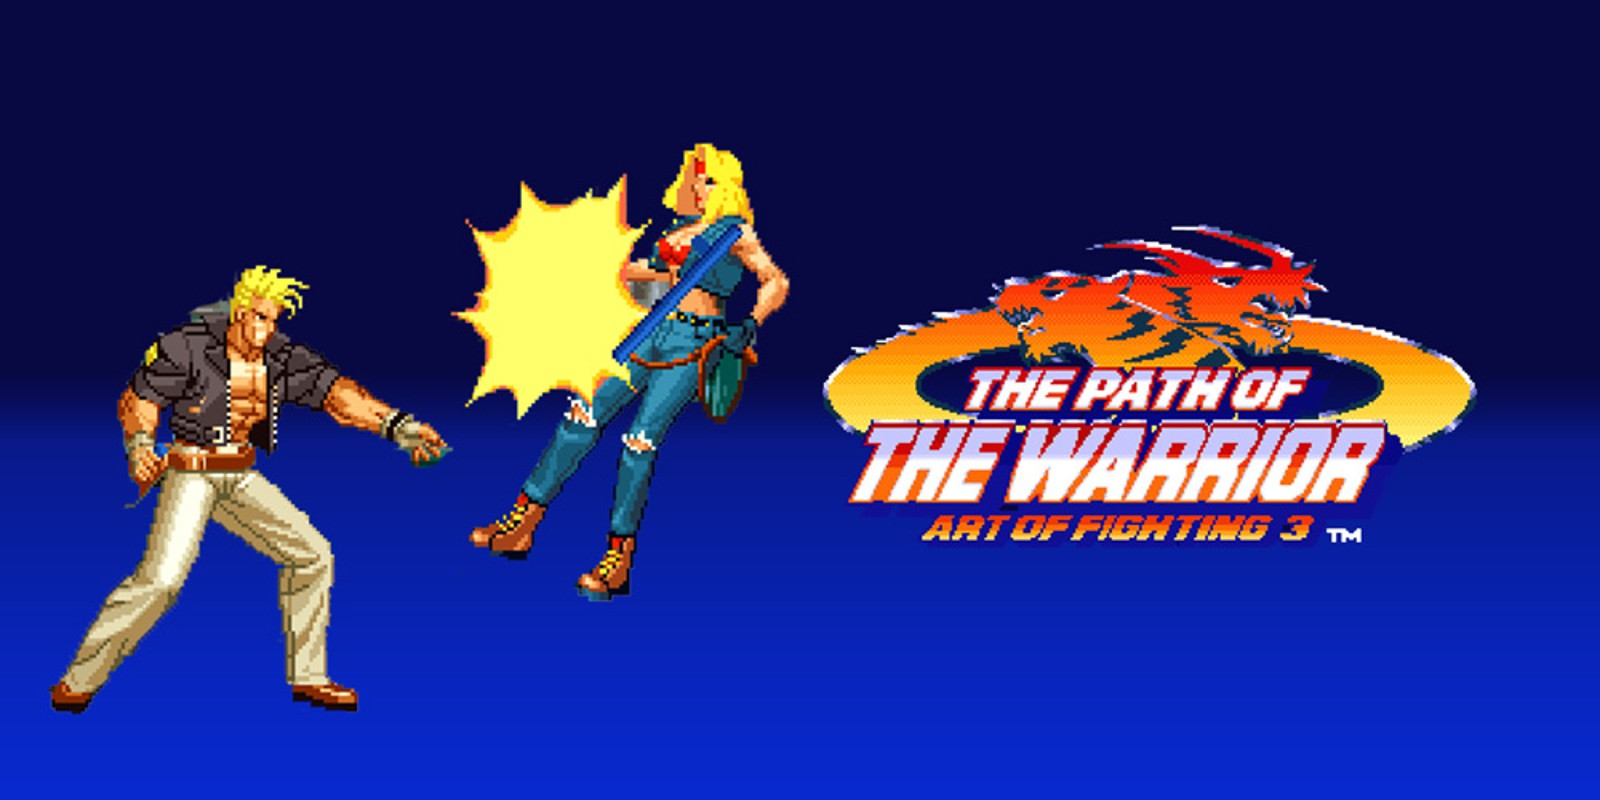 THE PATH OF THE WARRIOR ART OF FIGHTING 3 NEOGEO Games